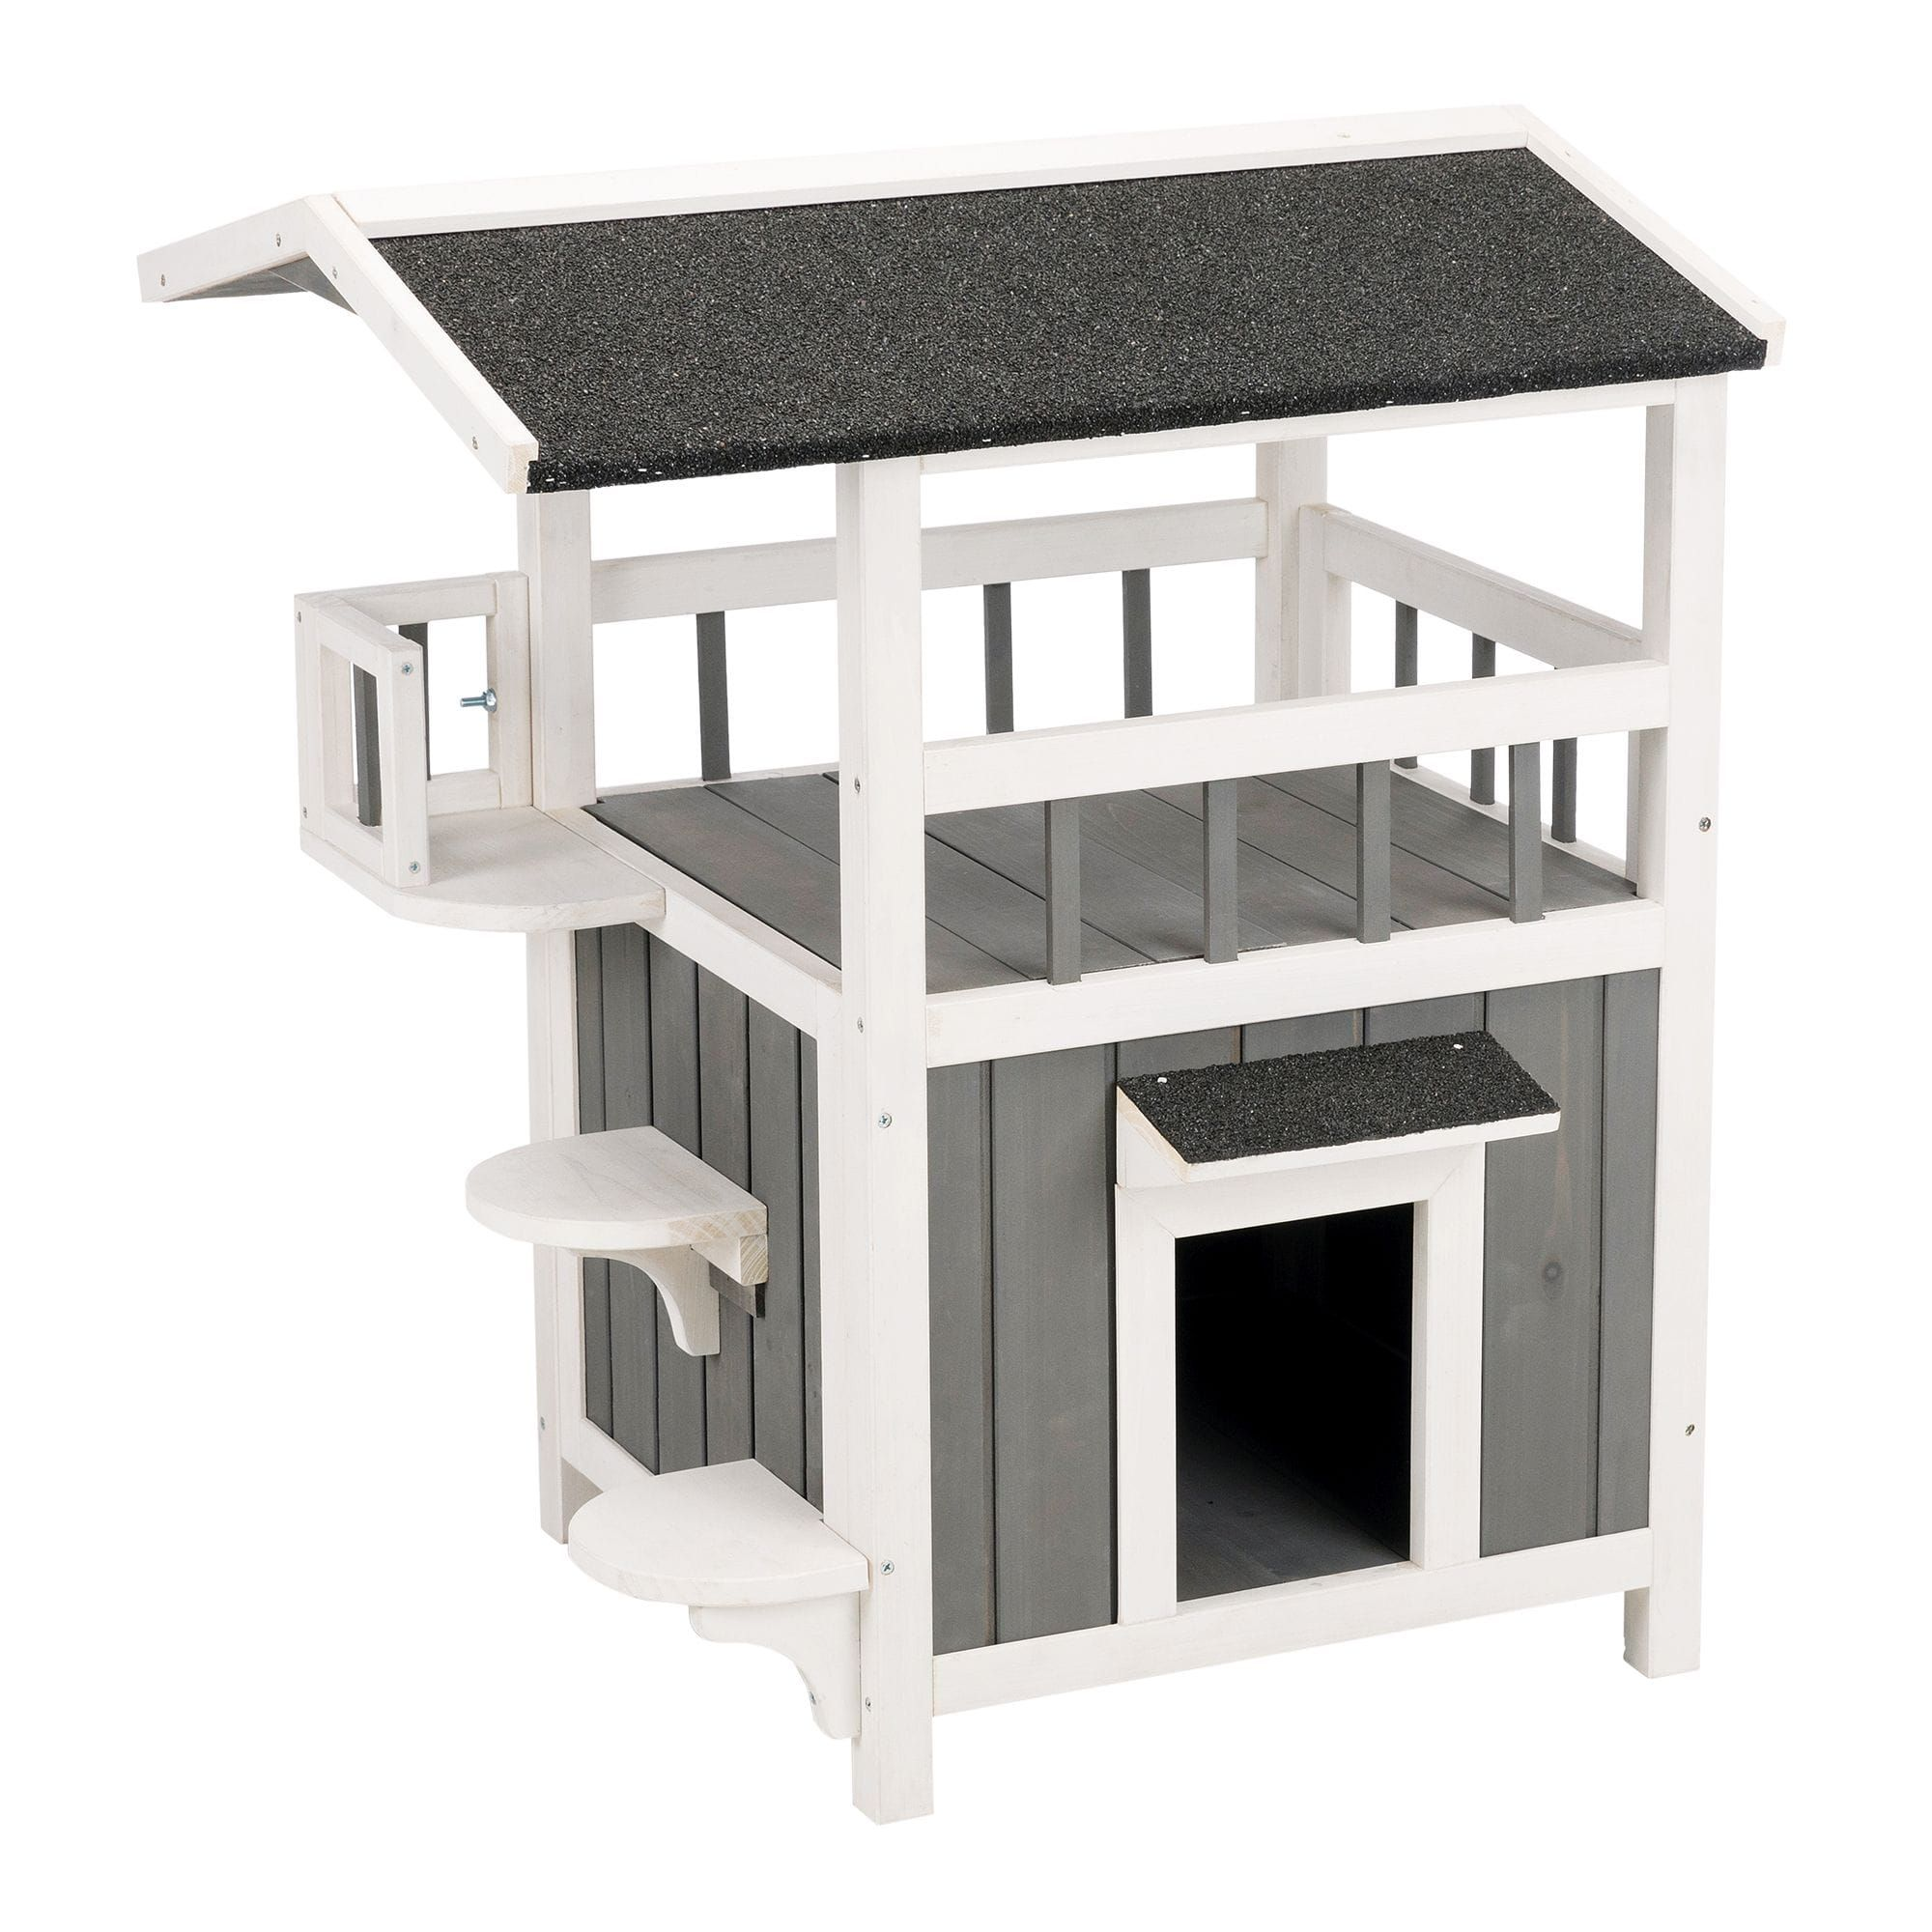 Trixie Natura Pet S Home With Shade Grey Cat Furniture 29 75 H Petco Wooden Cat House Outdoor Cat House Wooden Cat